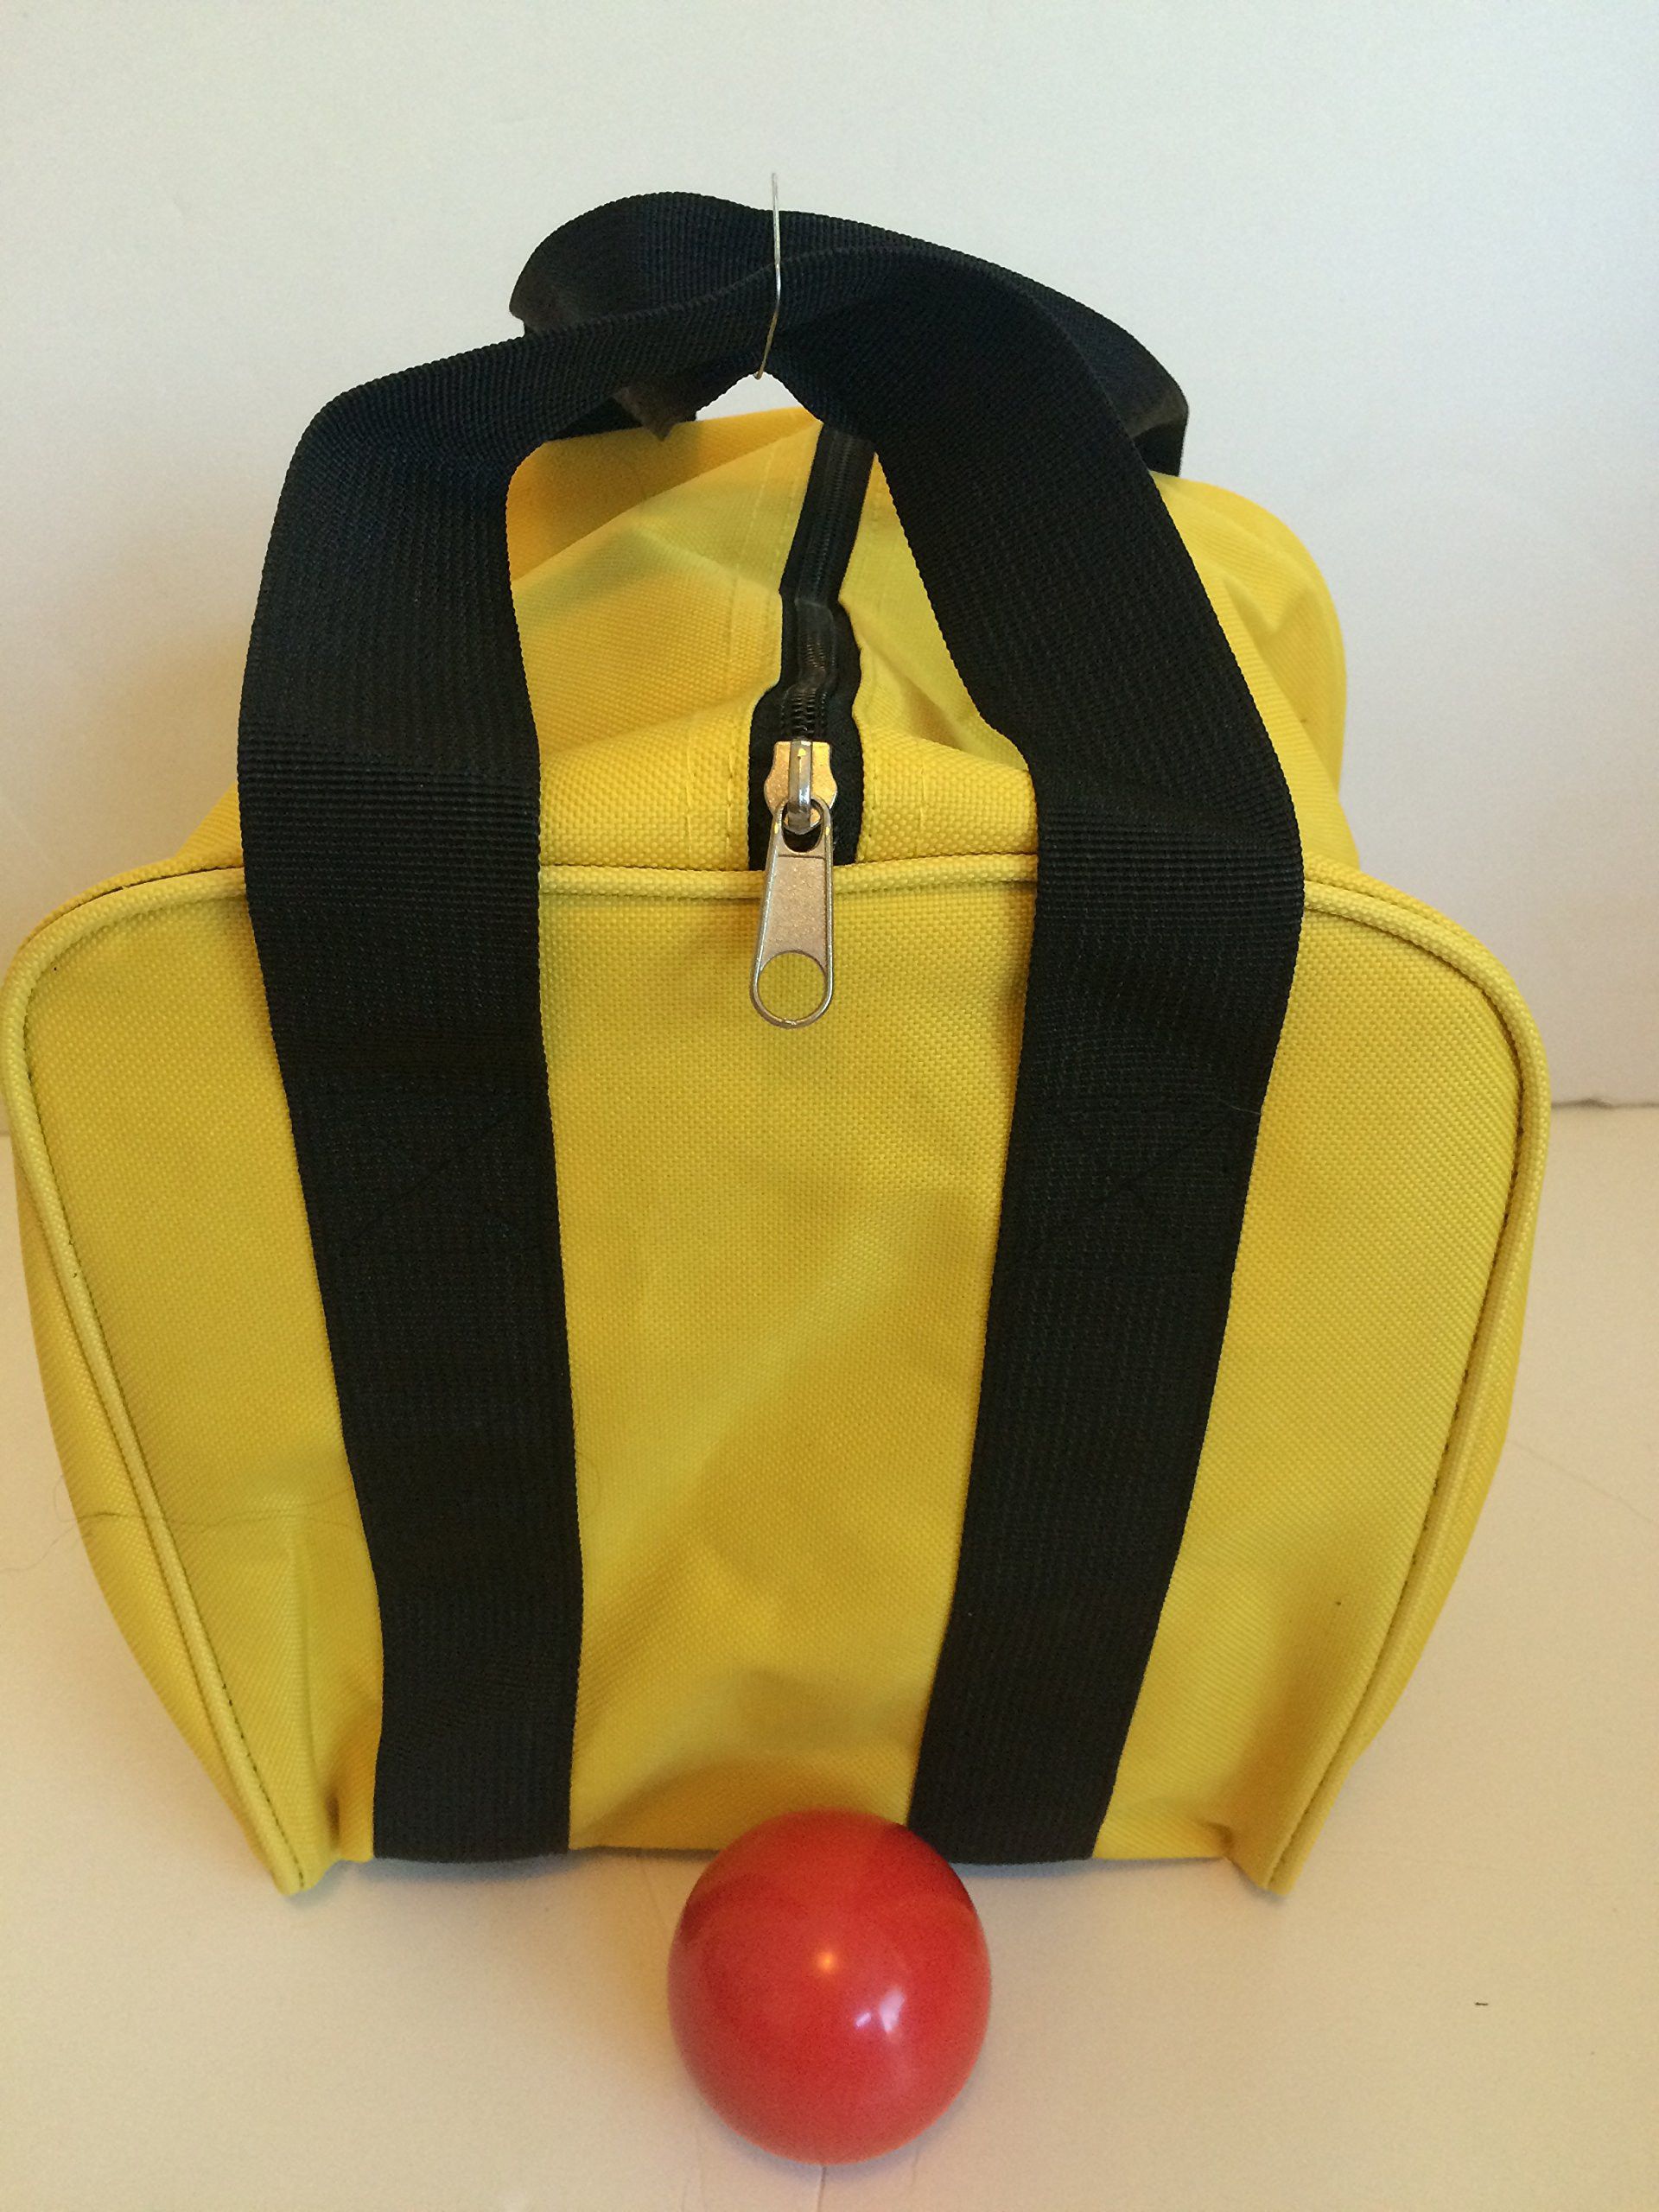 Unique Bocce Accessories Package - Extra Heavy Duty Nylon Bocce Bag (Yellow with Black Handles) and Red pallina